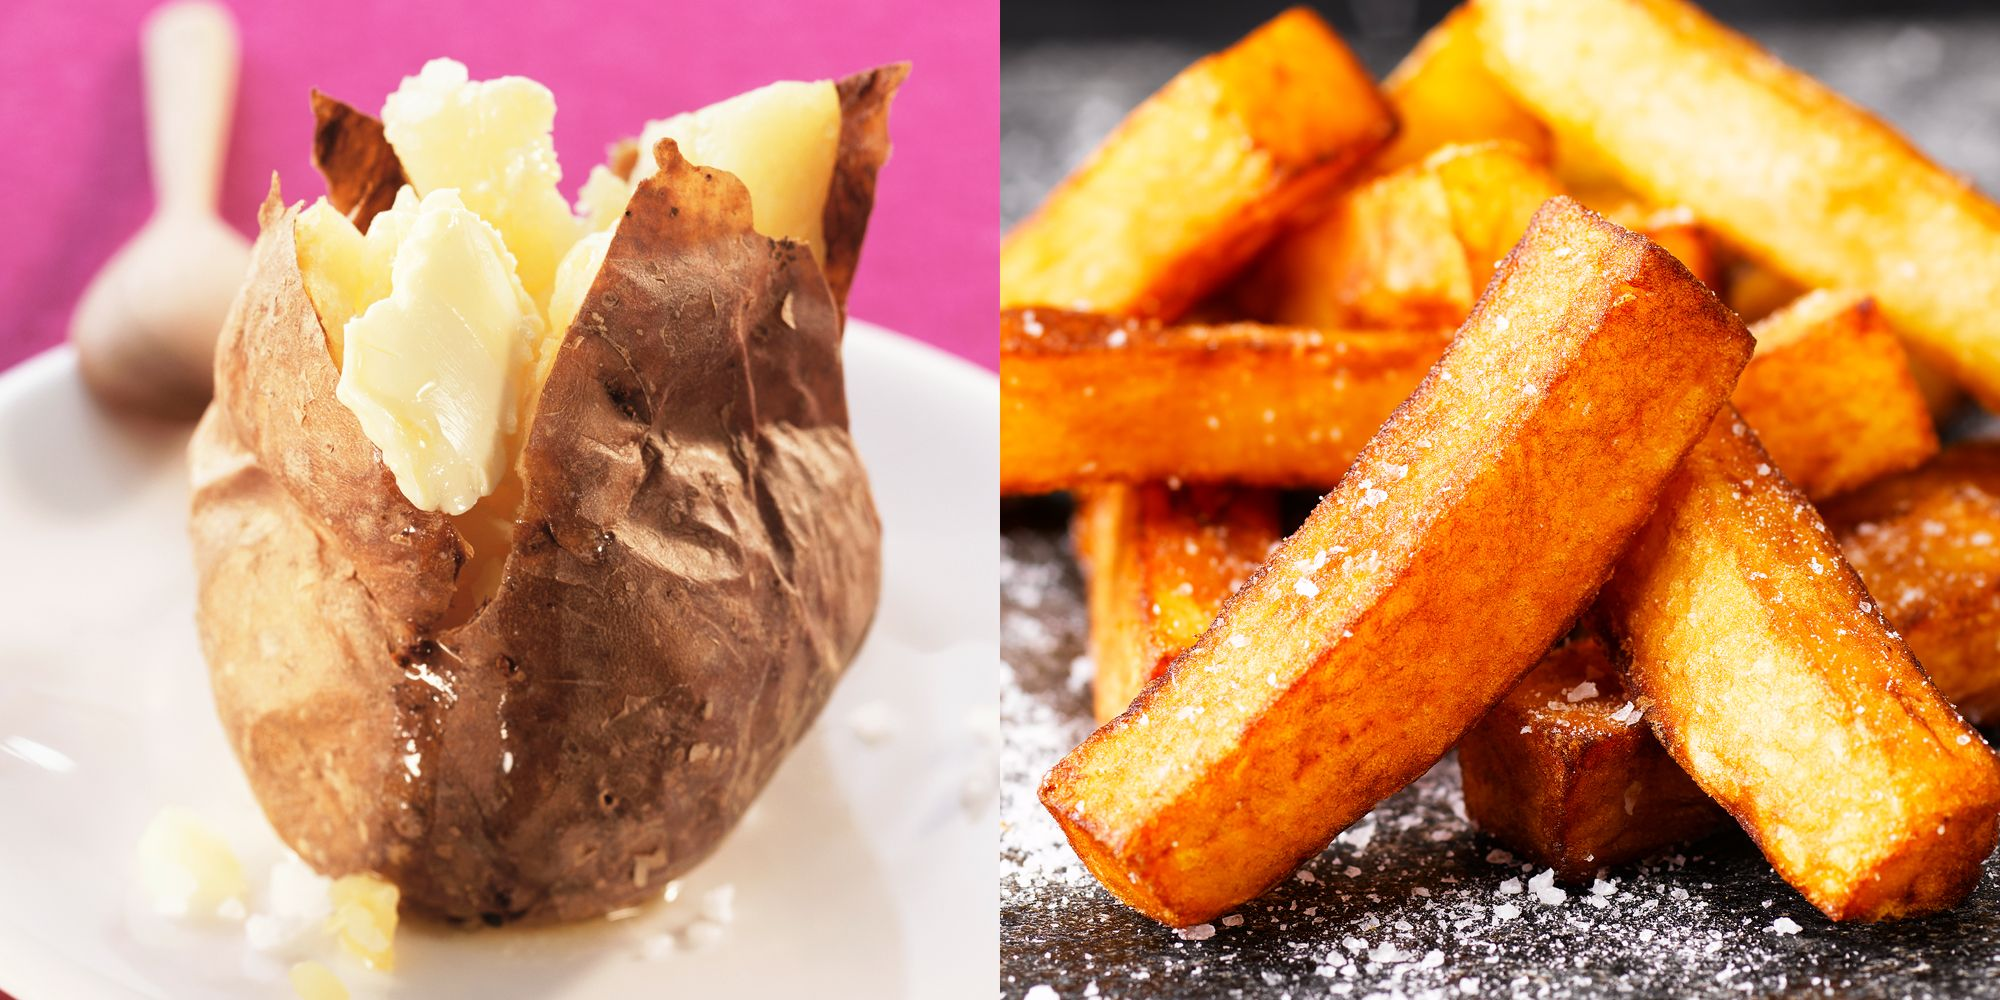 Are Potatoes That Bad For You?